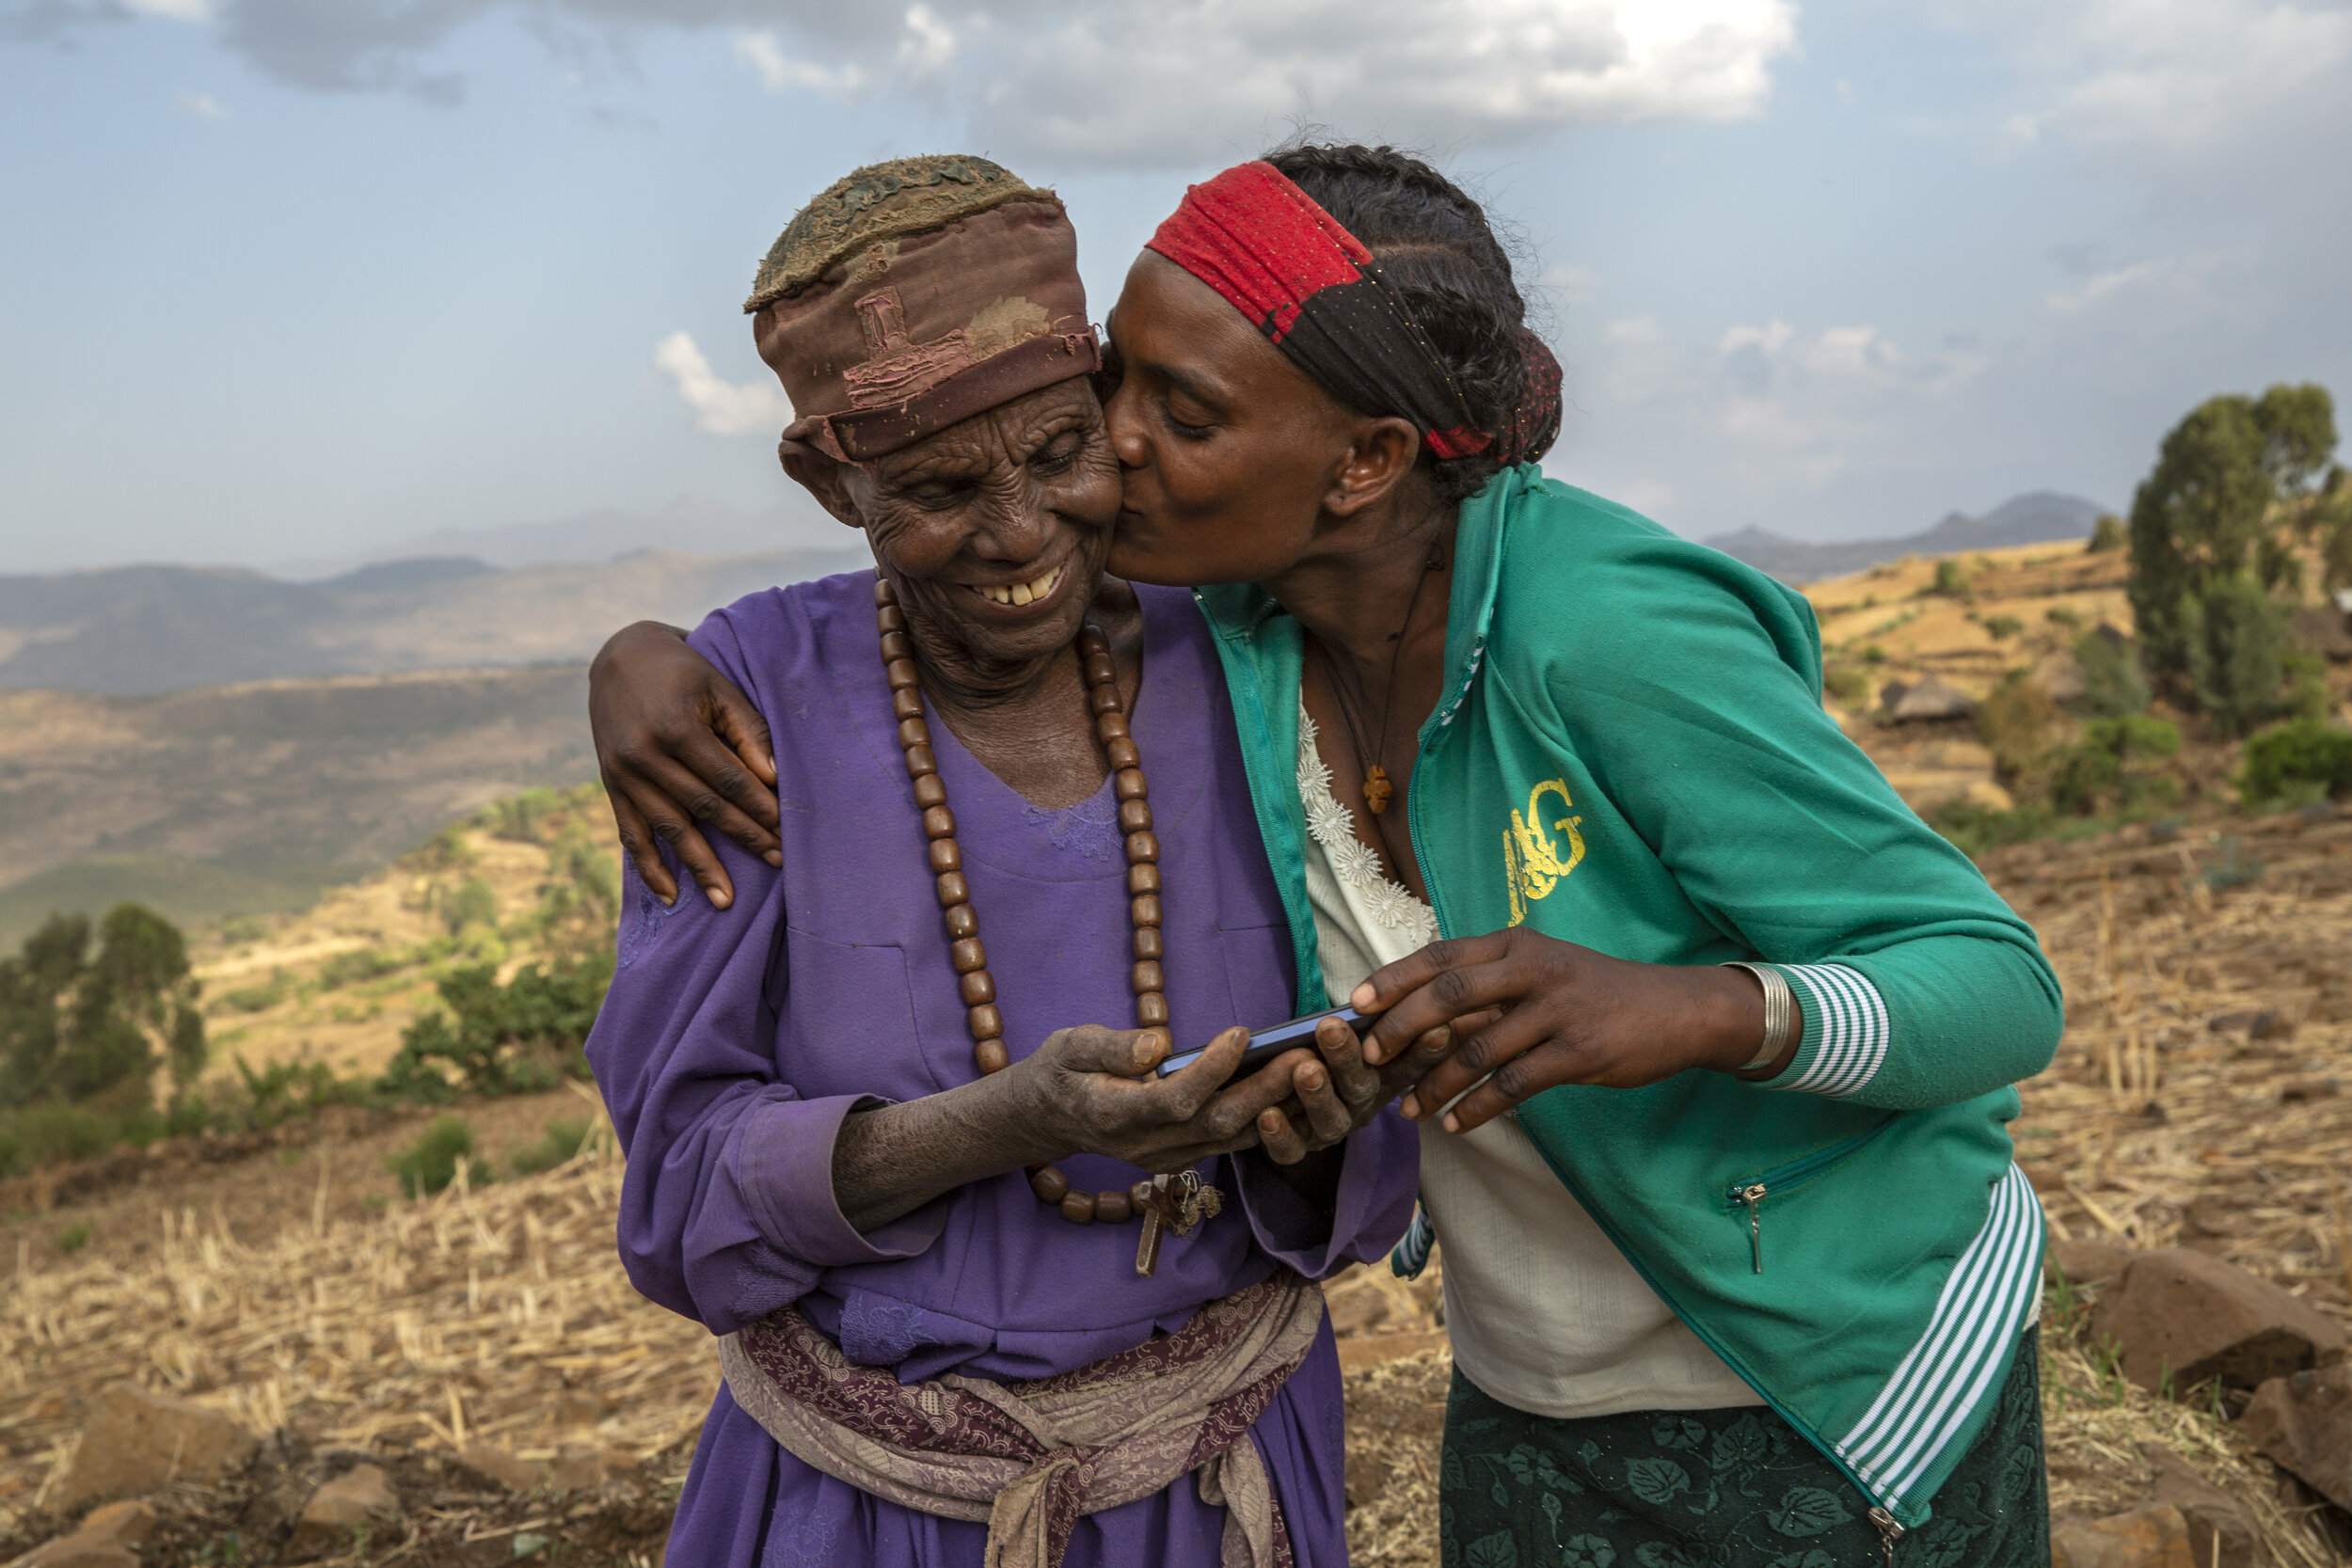 photo19-Generations-Ethiopia.jpg